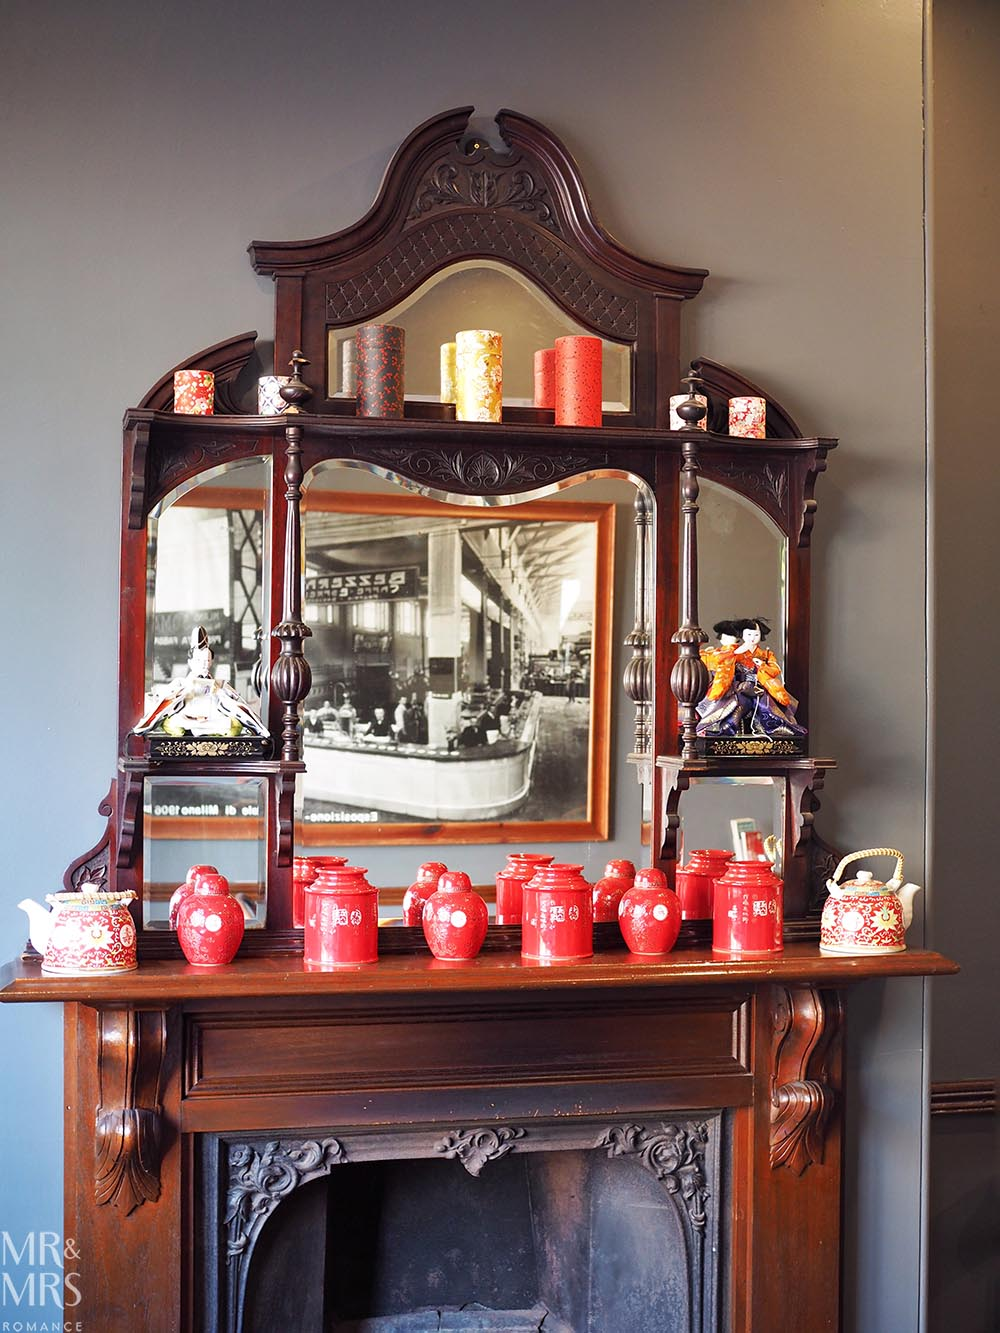 Where to stay in the Hunter Region, NSW - The Bronte Boutique Hotel, Morpeth - ornaments